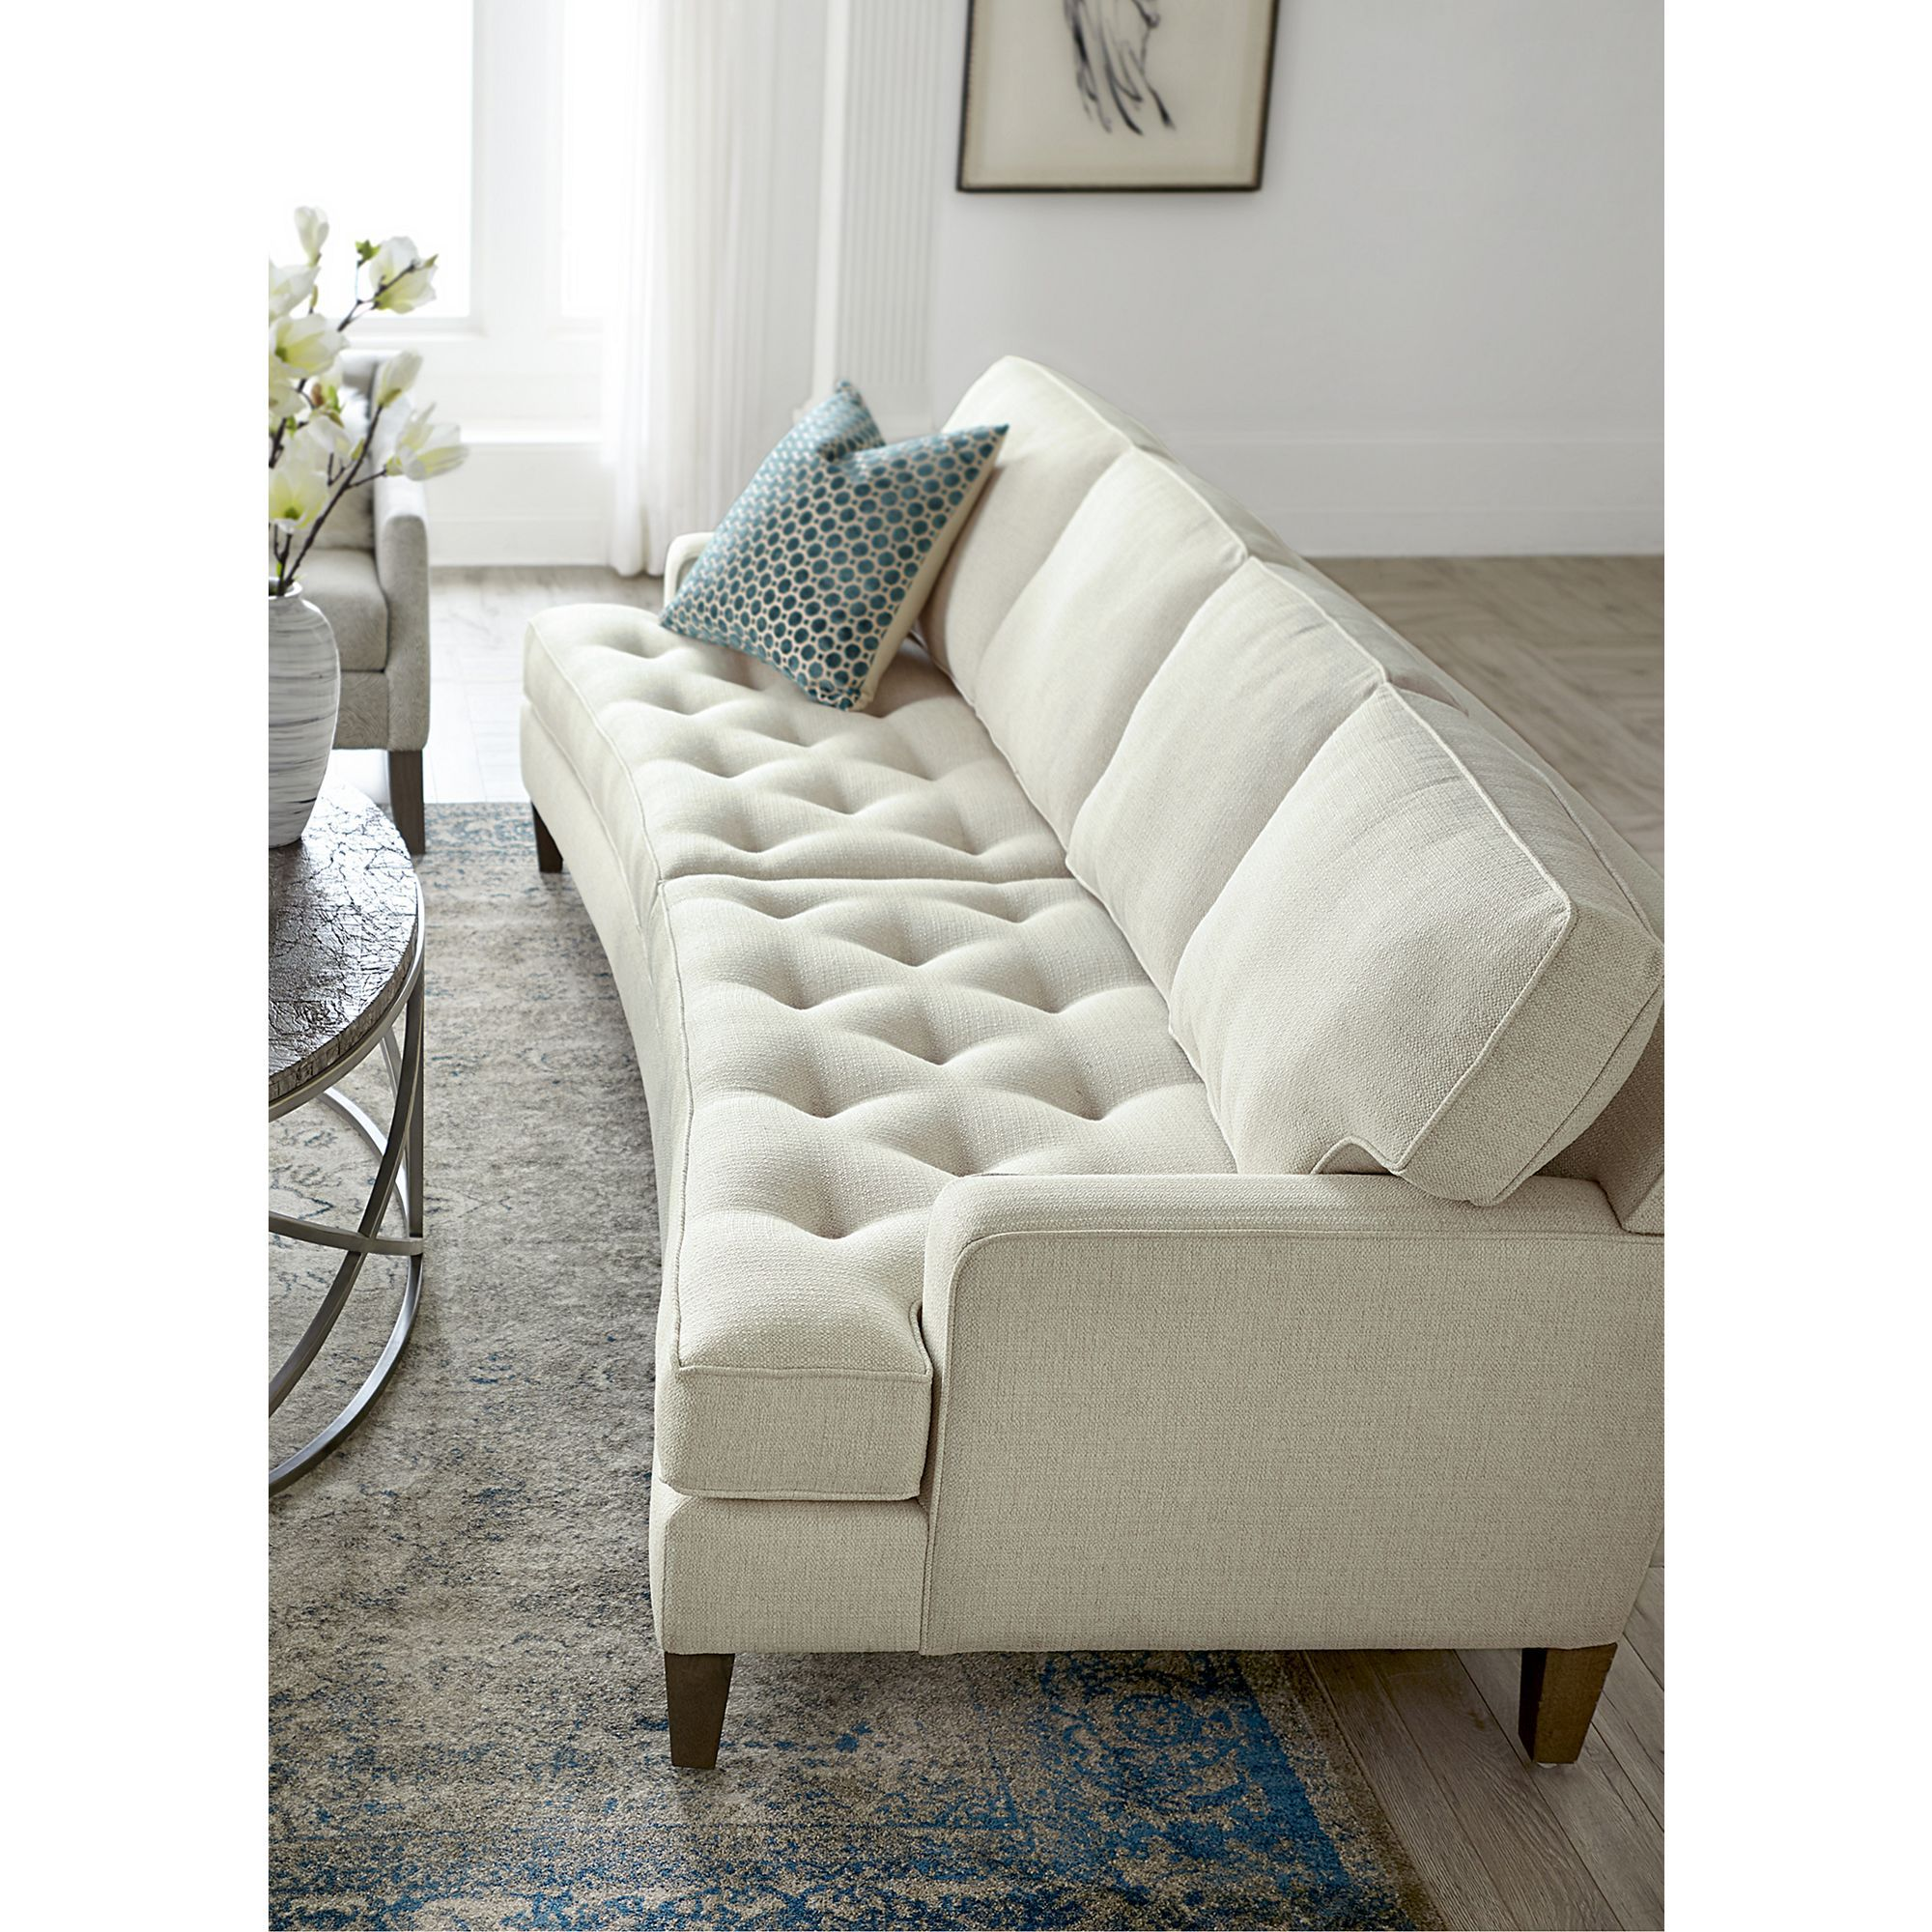 Havertys Gianna Xl Couch Small Family Room New Living Room Sofa